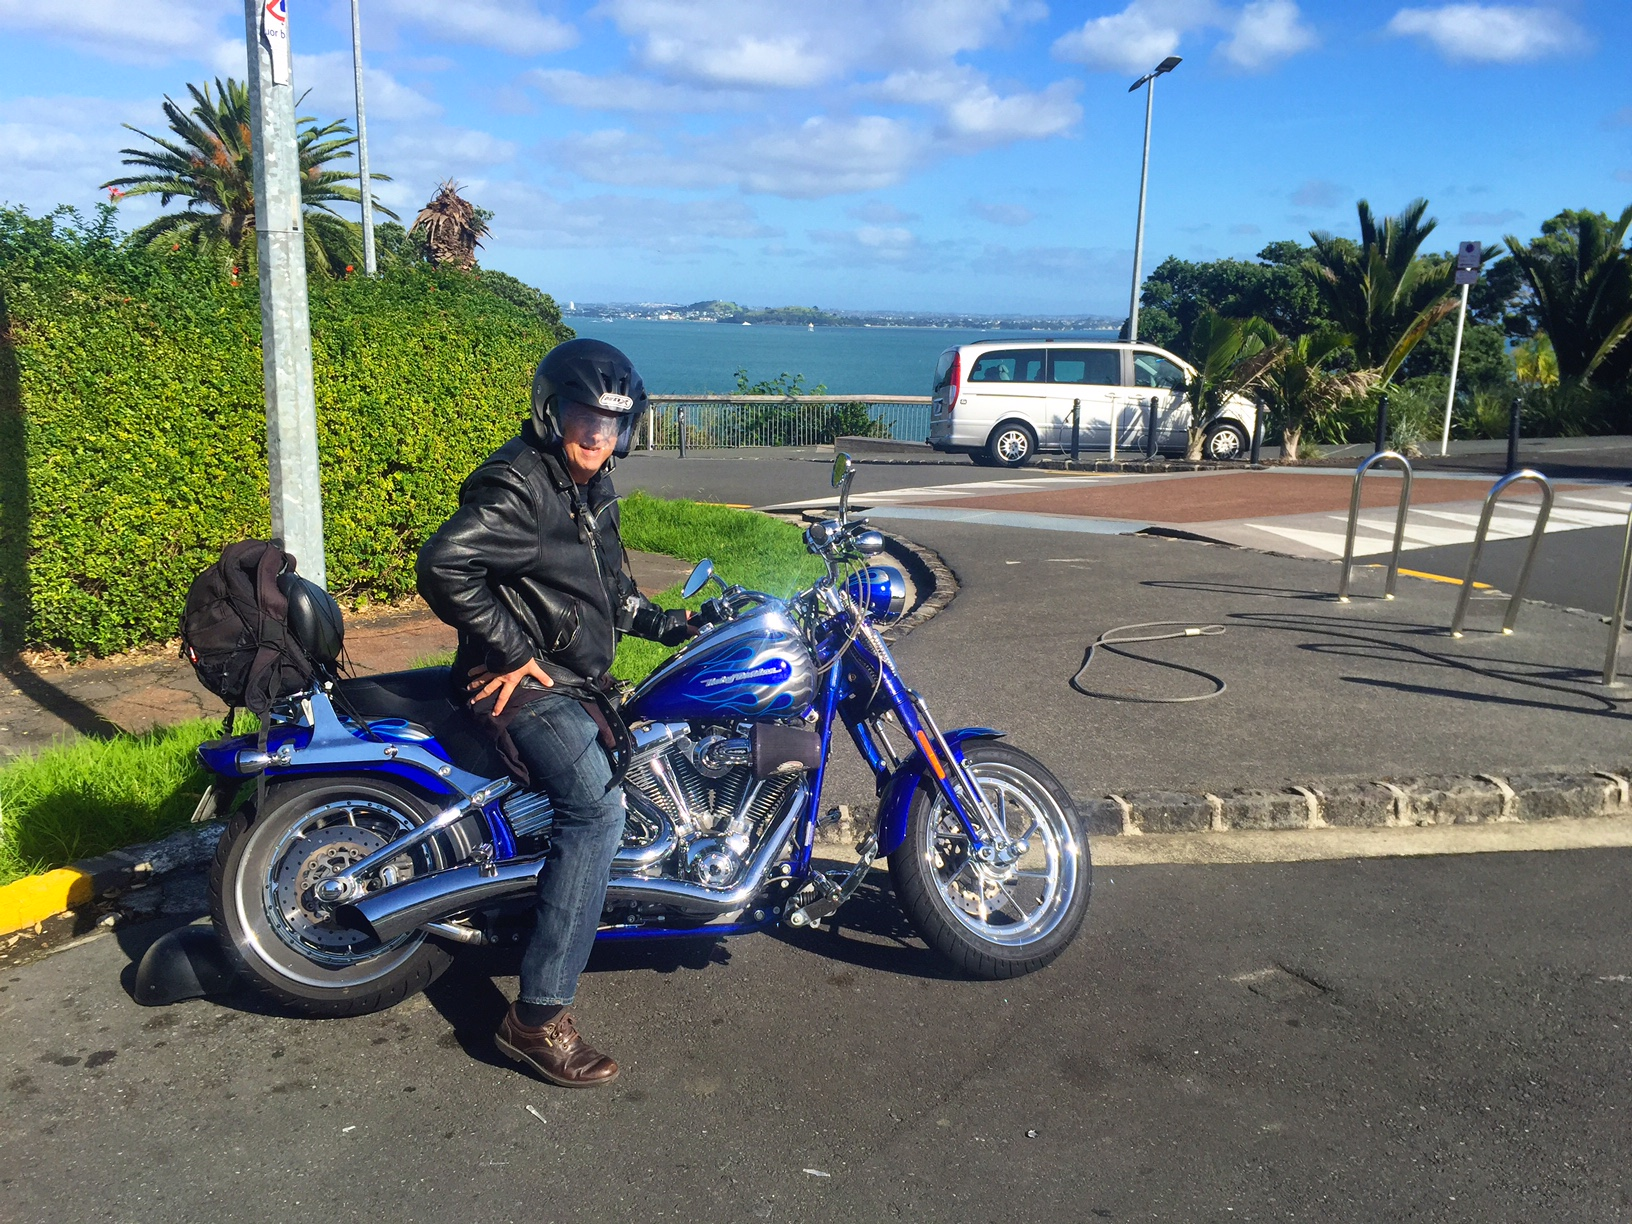 Leather is probably not my look, but I loved my Harley-Davidson ride in Auckland, New Zealand.